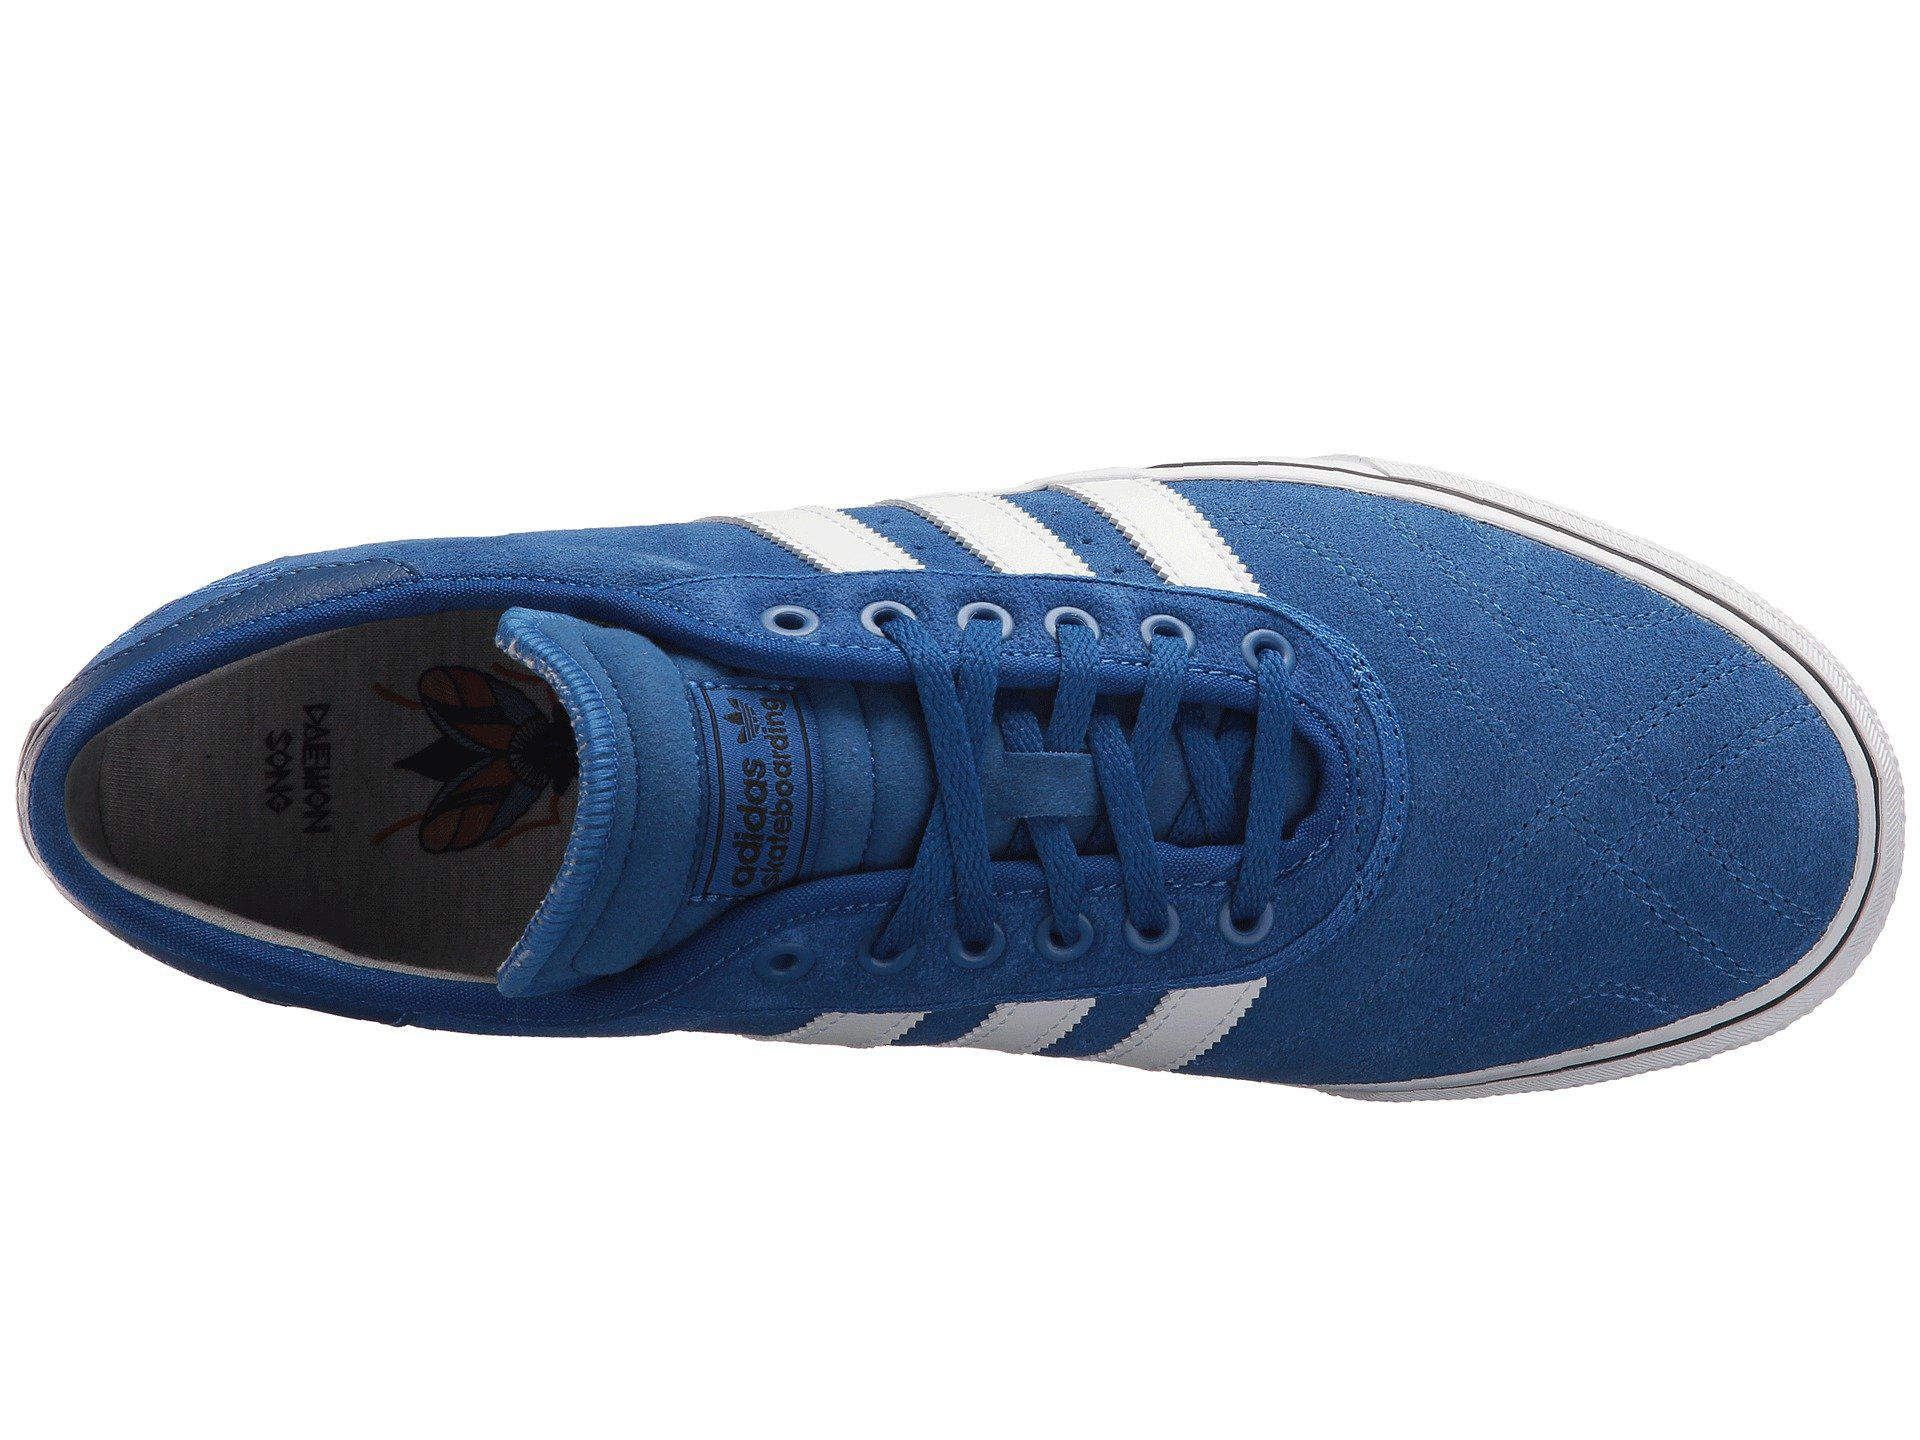 09bfc42234d91 Lyst - adidas Originals Adiease Premiere X Bonethrower (blue ...